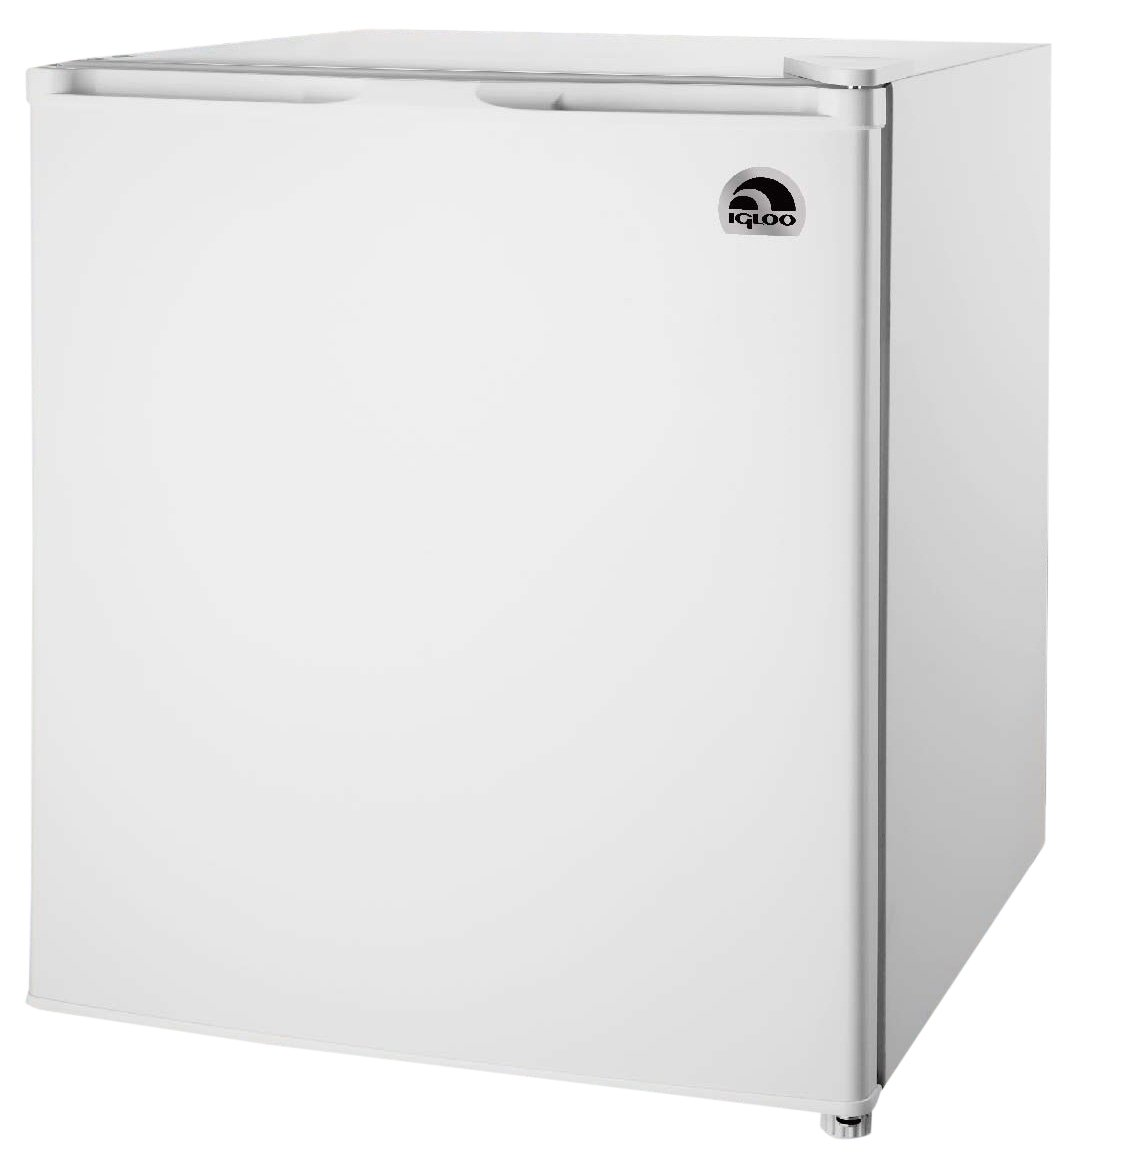 Vertical Freezers For Sale Amazoncom Igloo Frf110 Vertical Freezer 11 Cu Ft White